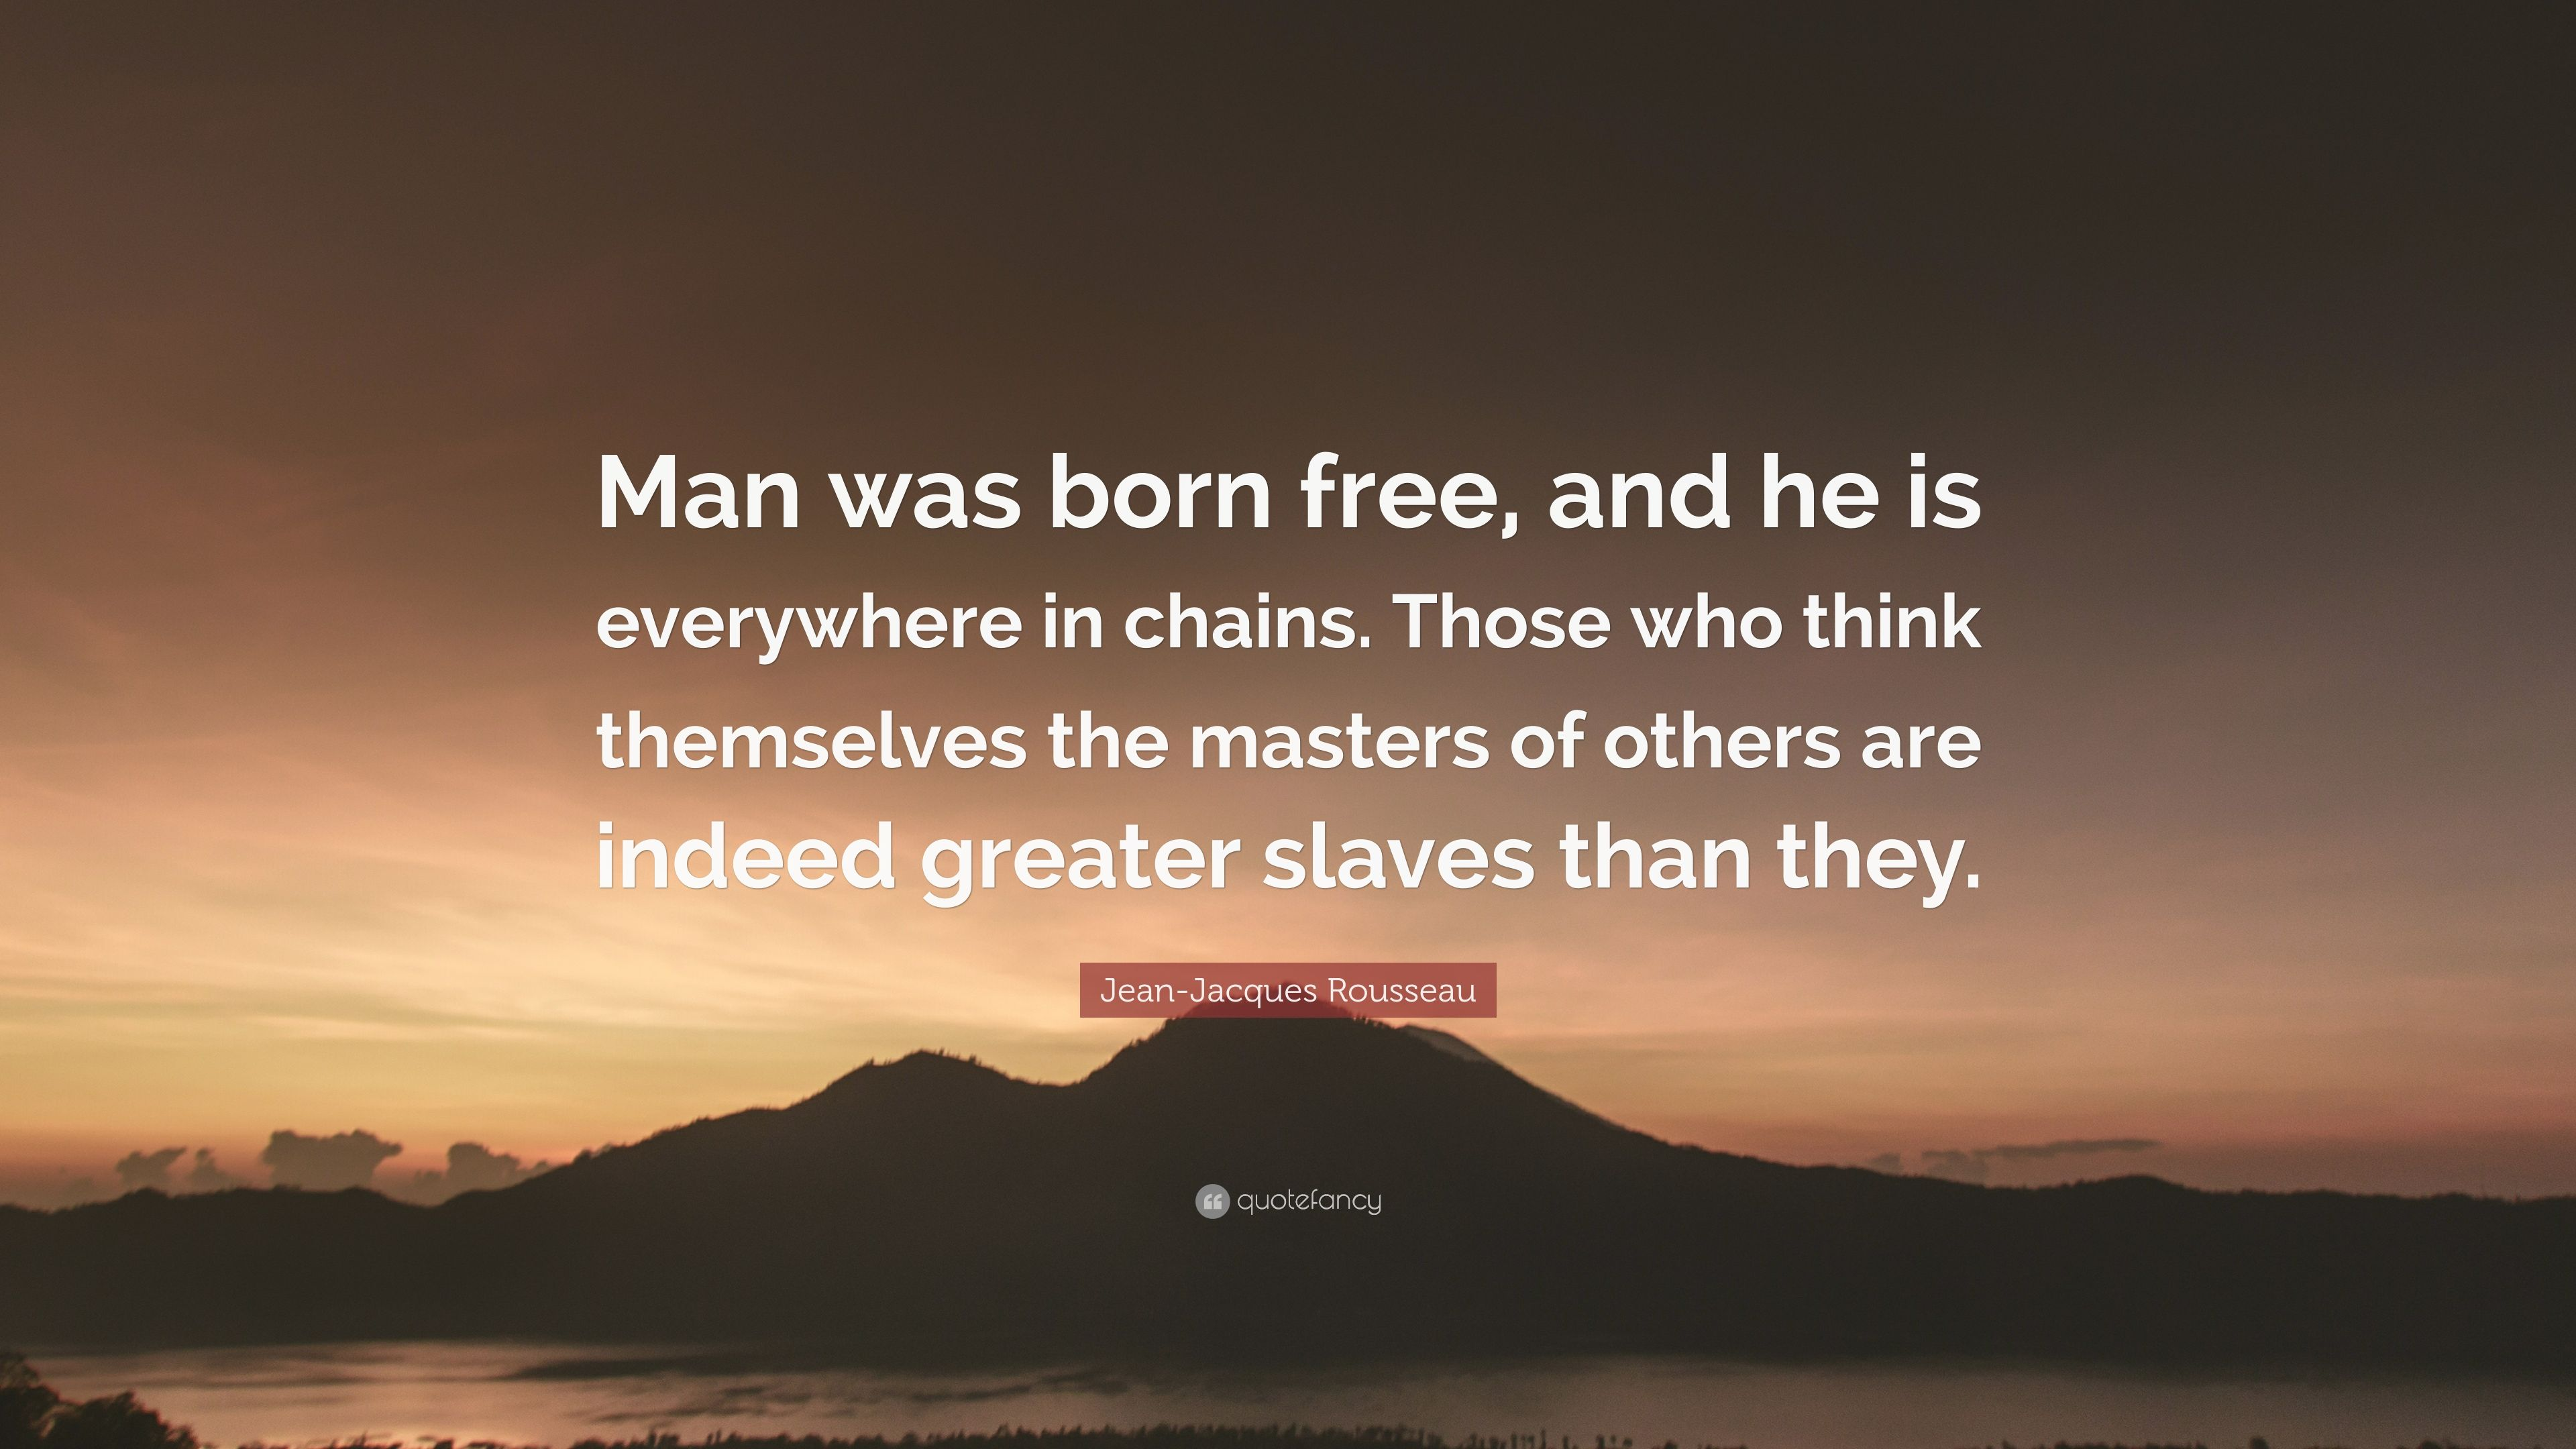 a man is born free but